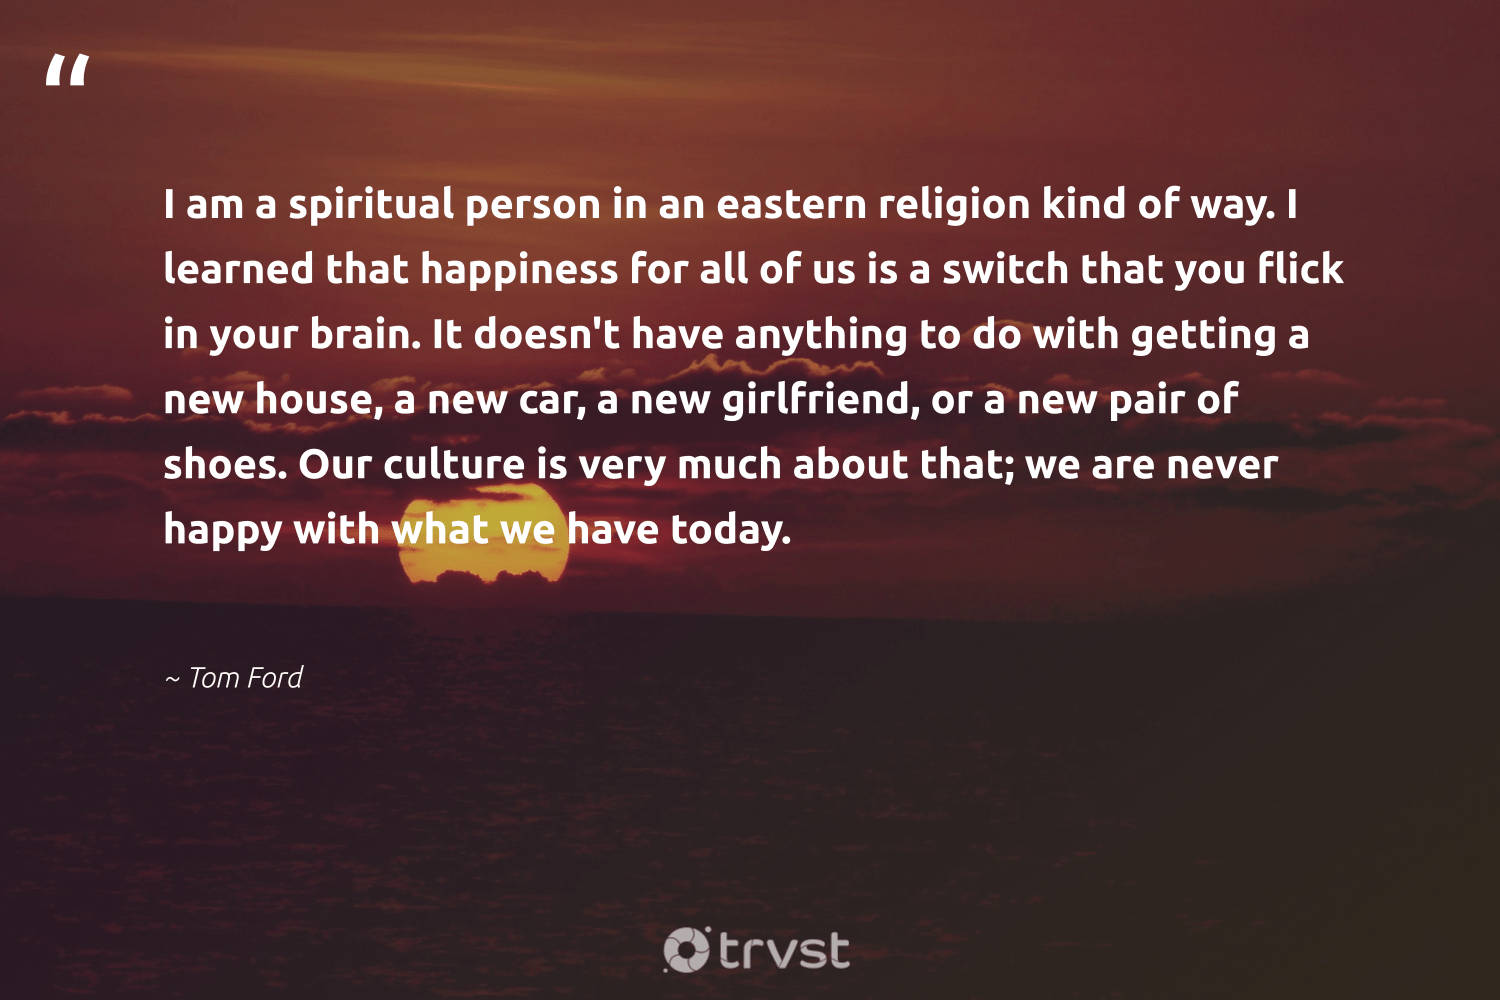 """""""I am a spiritual person in an eastern religion kind of way. I learned that happiness for all of us is a switch that you flick in your brain. It doesn't have anything to do with getting a new house, a new car, a new girlfriend, or a new pair of shoes. Our culture is very much about that; we are never happy with what we have today.""""  - Tom Ford #trvst #quotes #happy #happiness #spiritual #togetherwecan #beinspired #changemakers #ecoconscious #begreat #thinkgreen #health"""